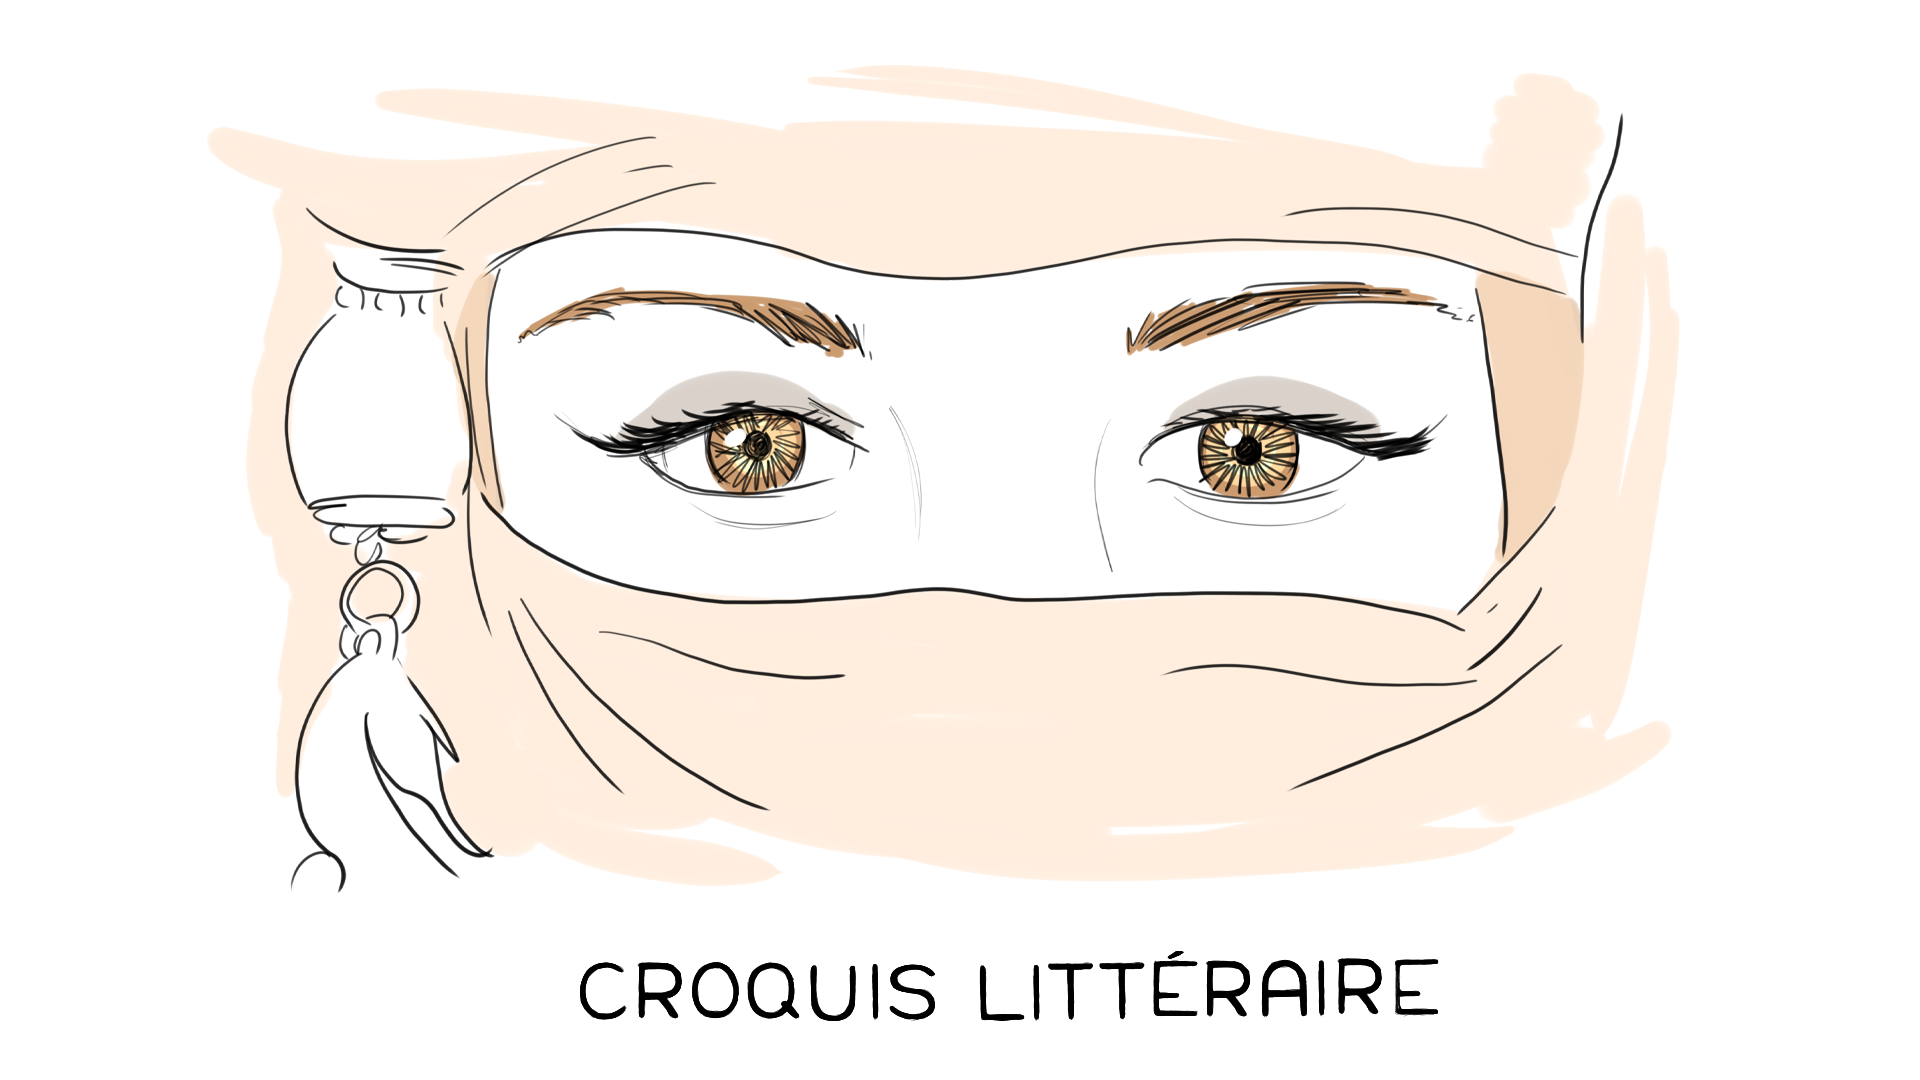 Image of croquis litteraire.